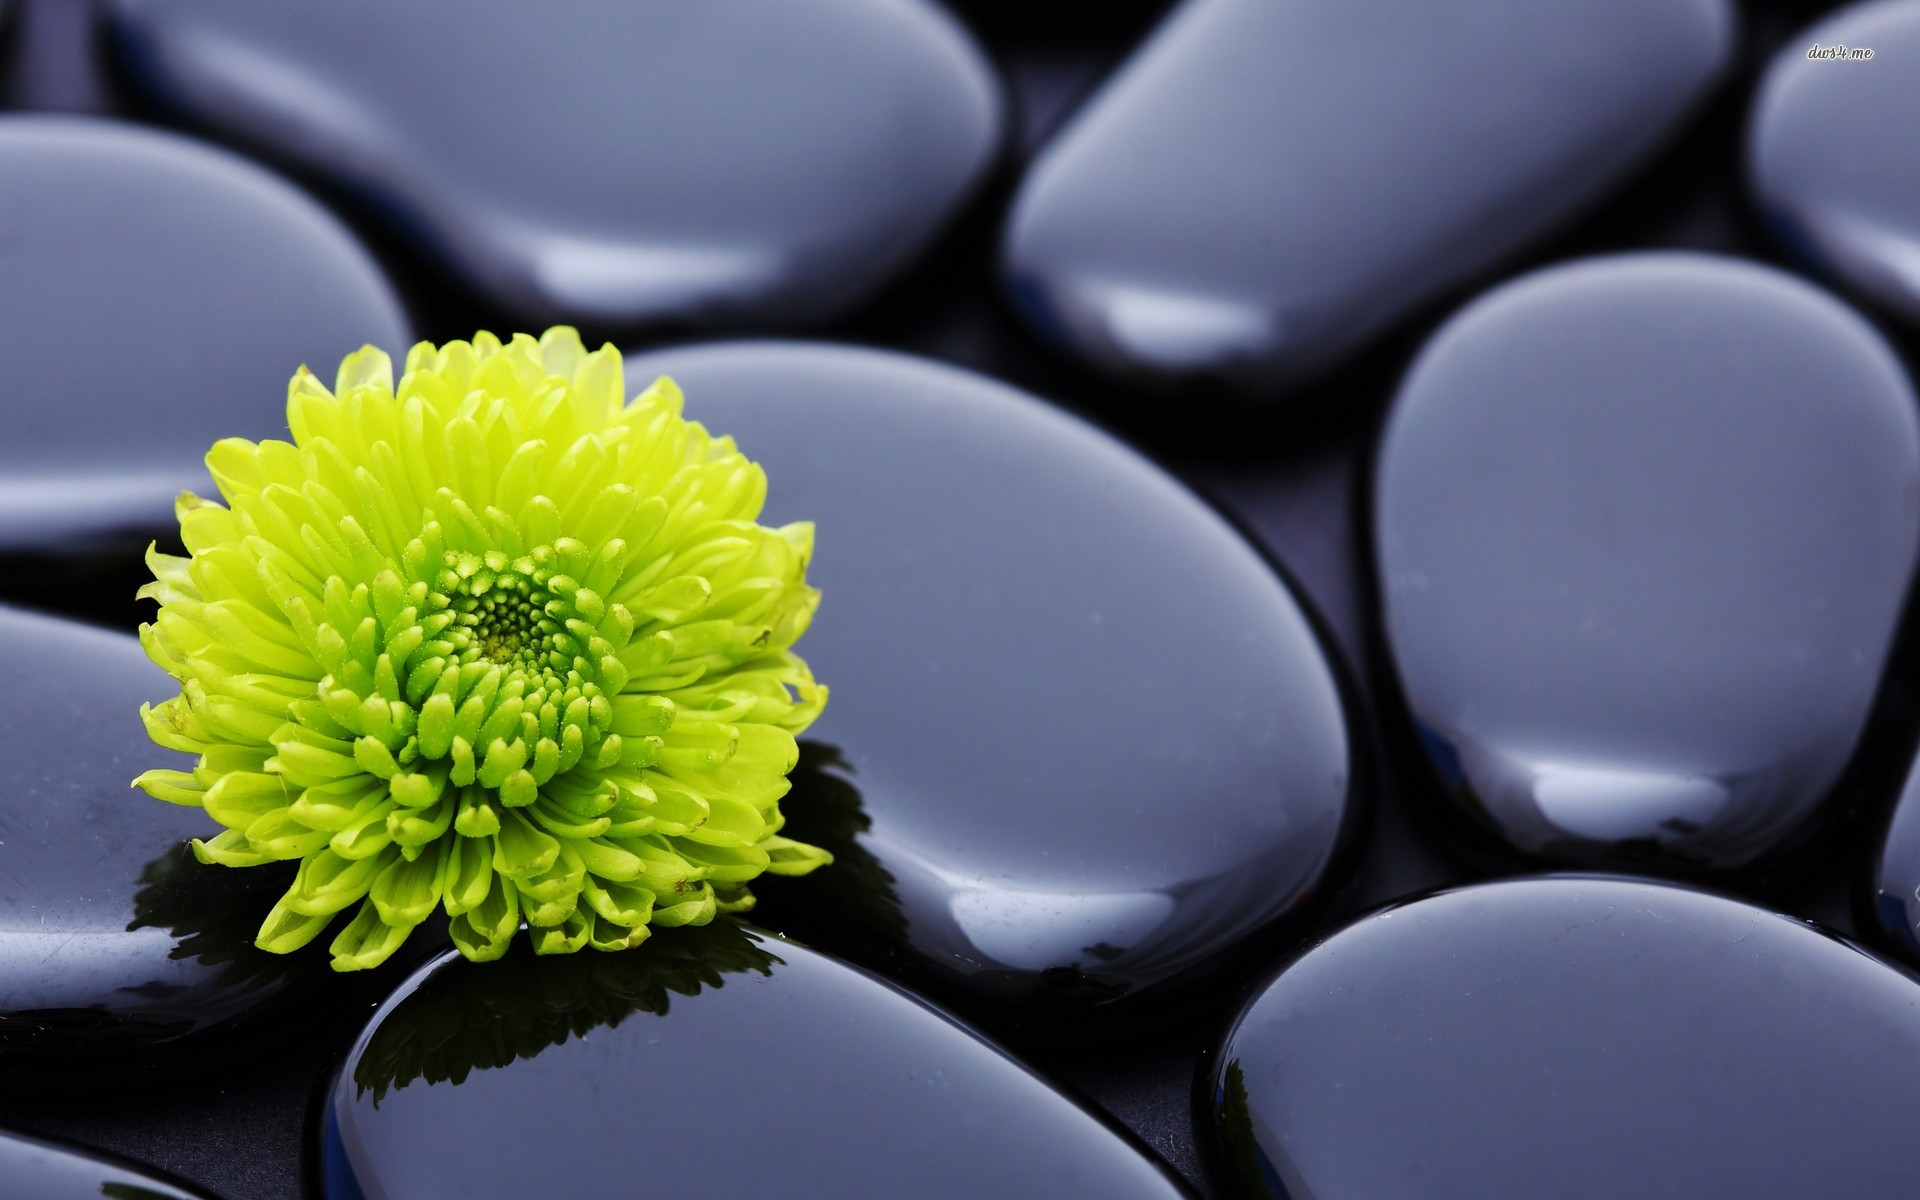 15225-green-dahlia-and-zen-stones-1920x1200-photography-wallpaper